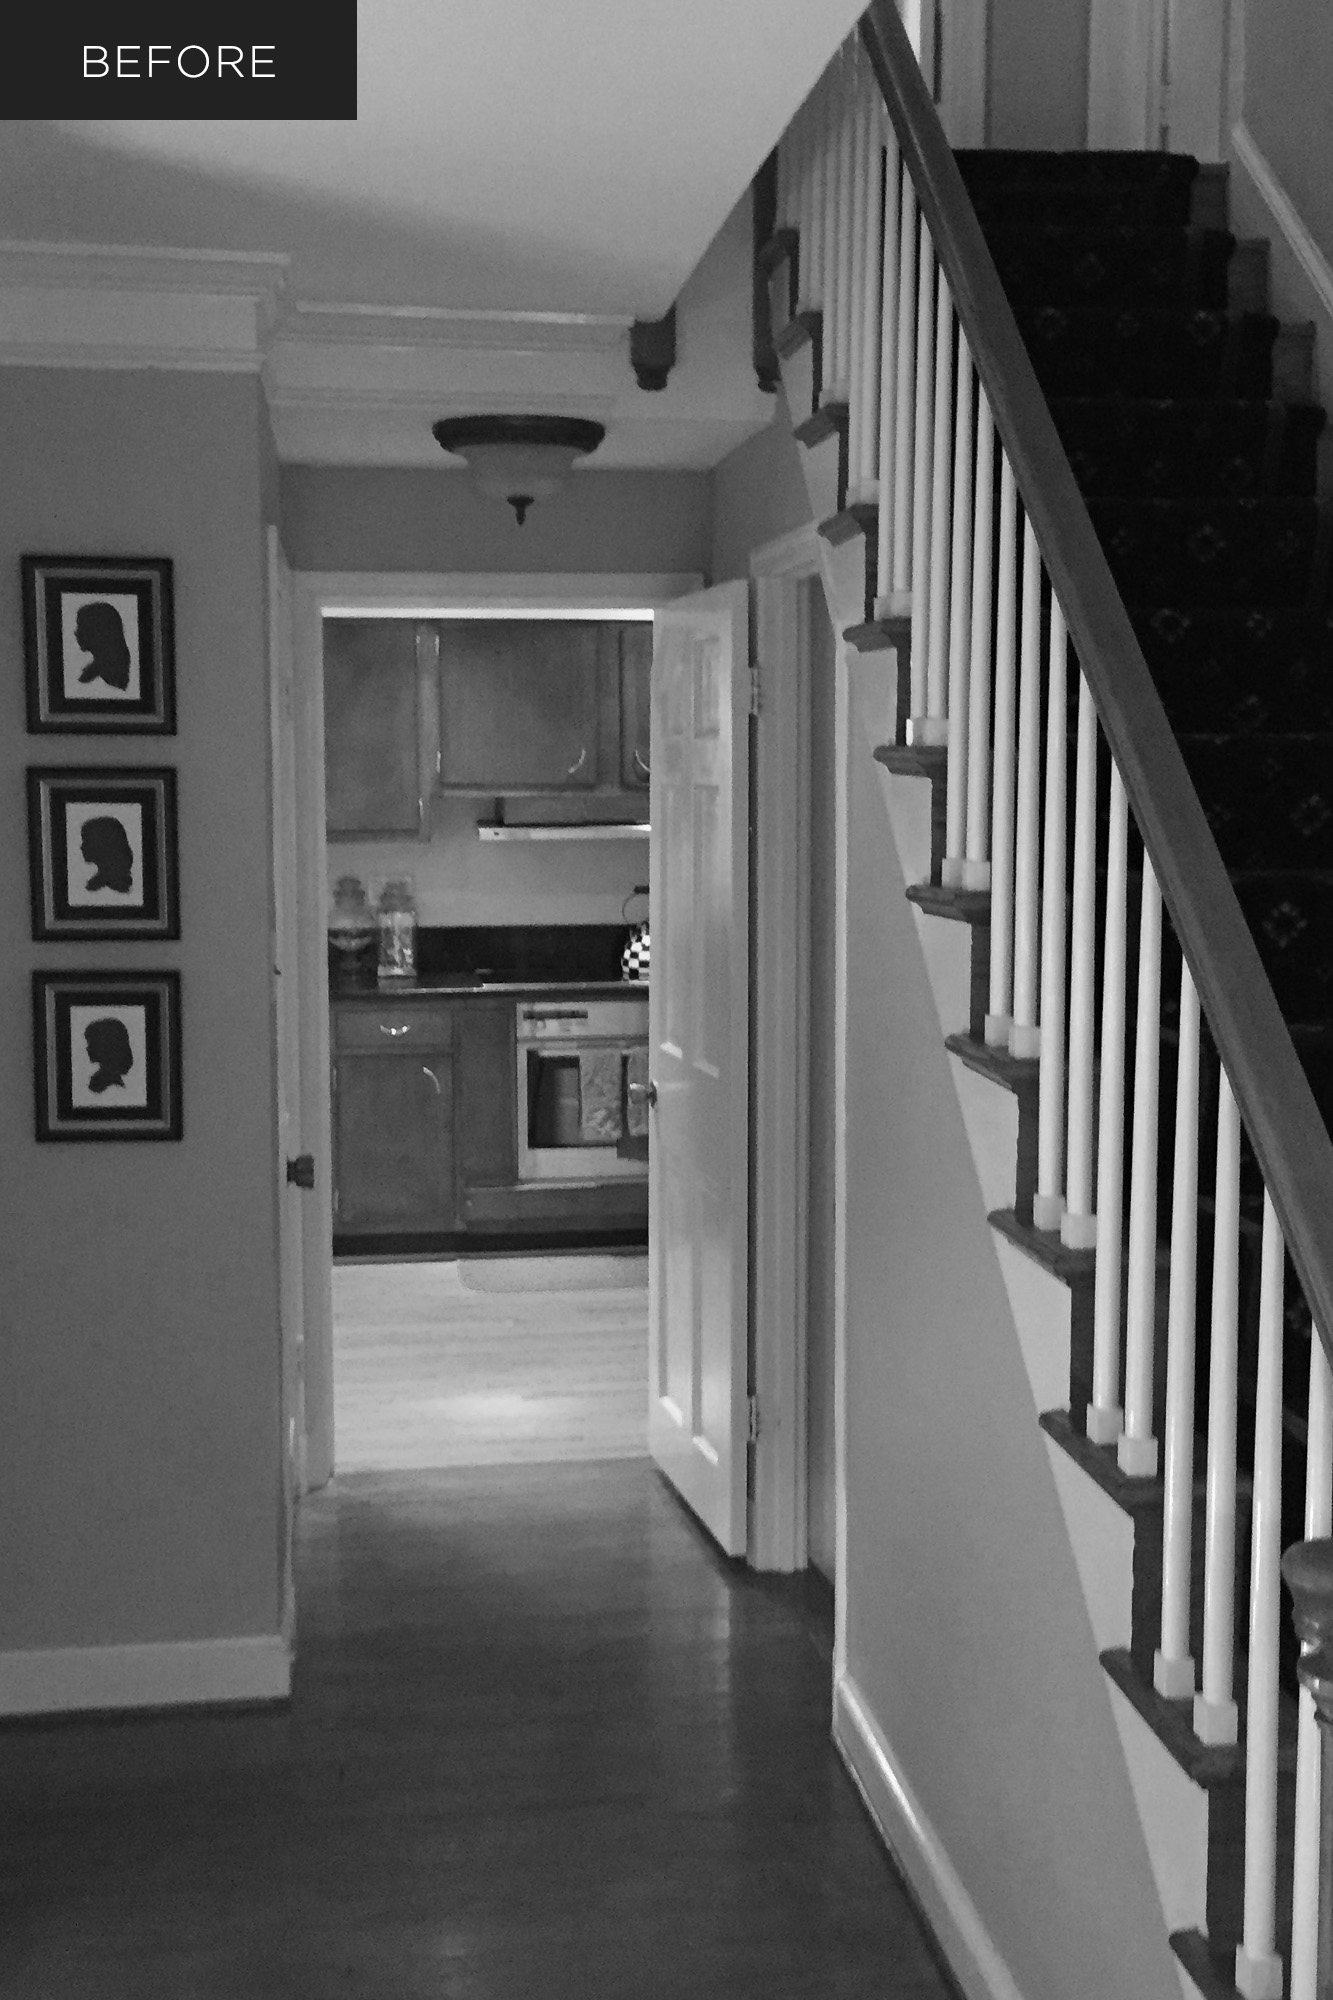 Dark front hall and kitchen before custom home renovation